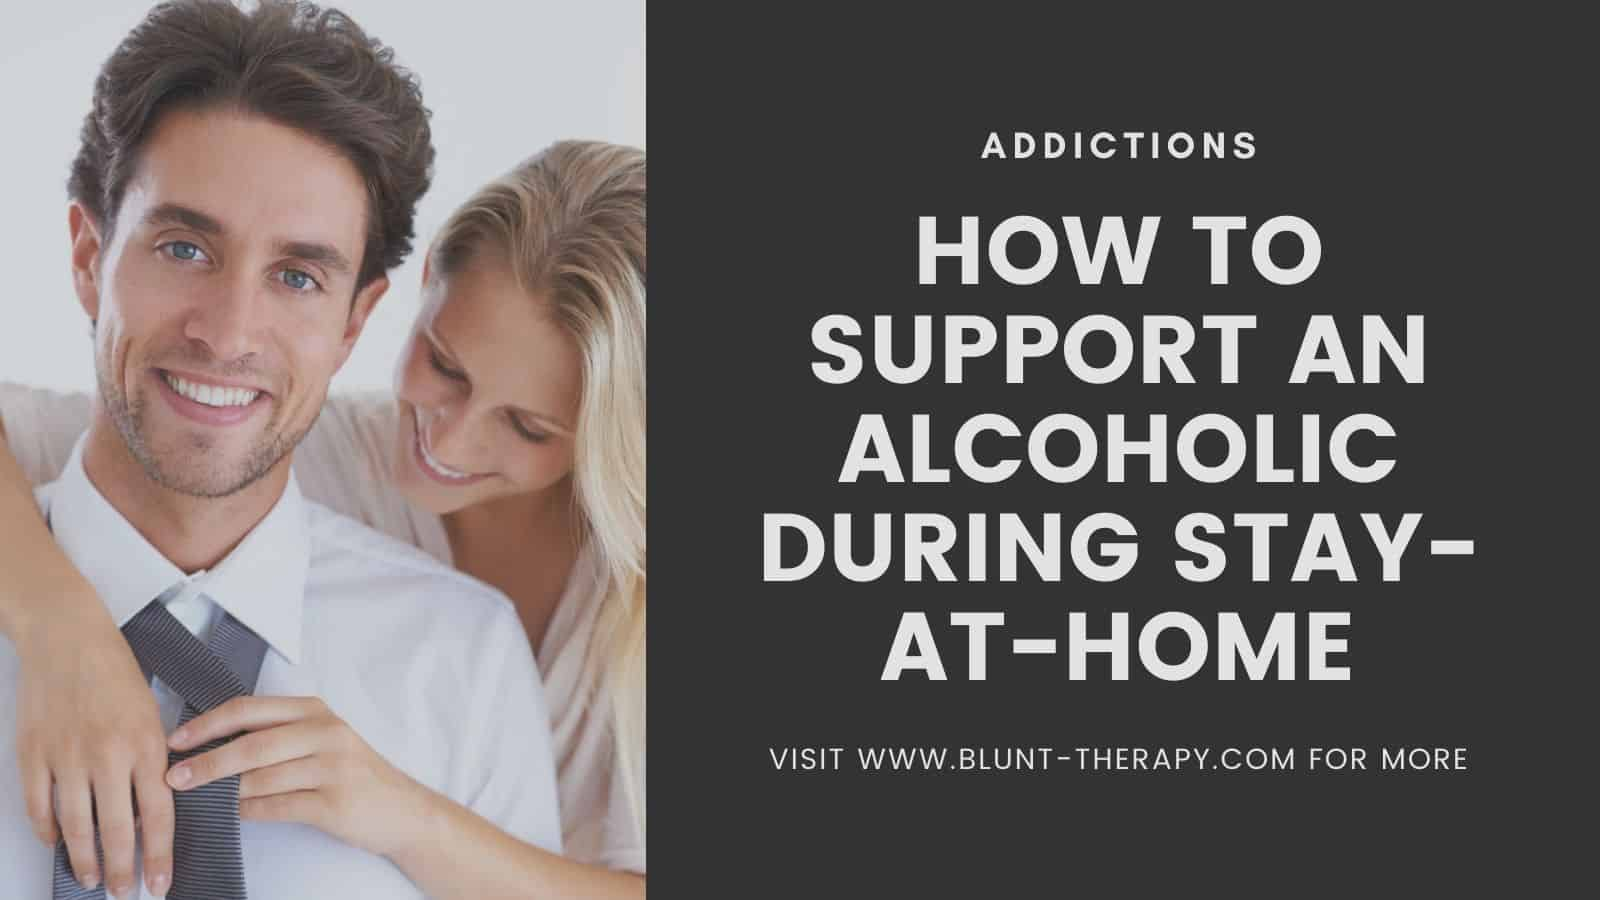 How to support an alcoholic during stay-at-home with these 7 tips